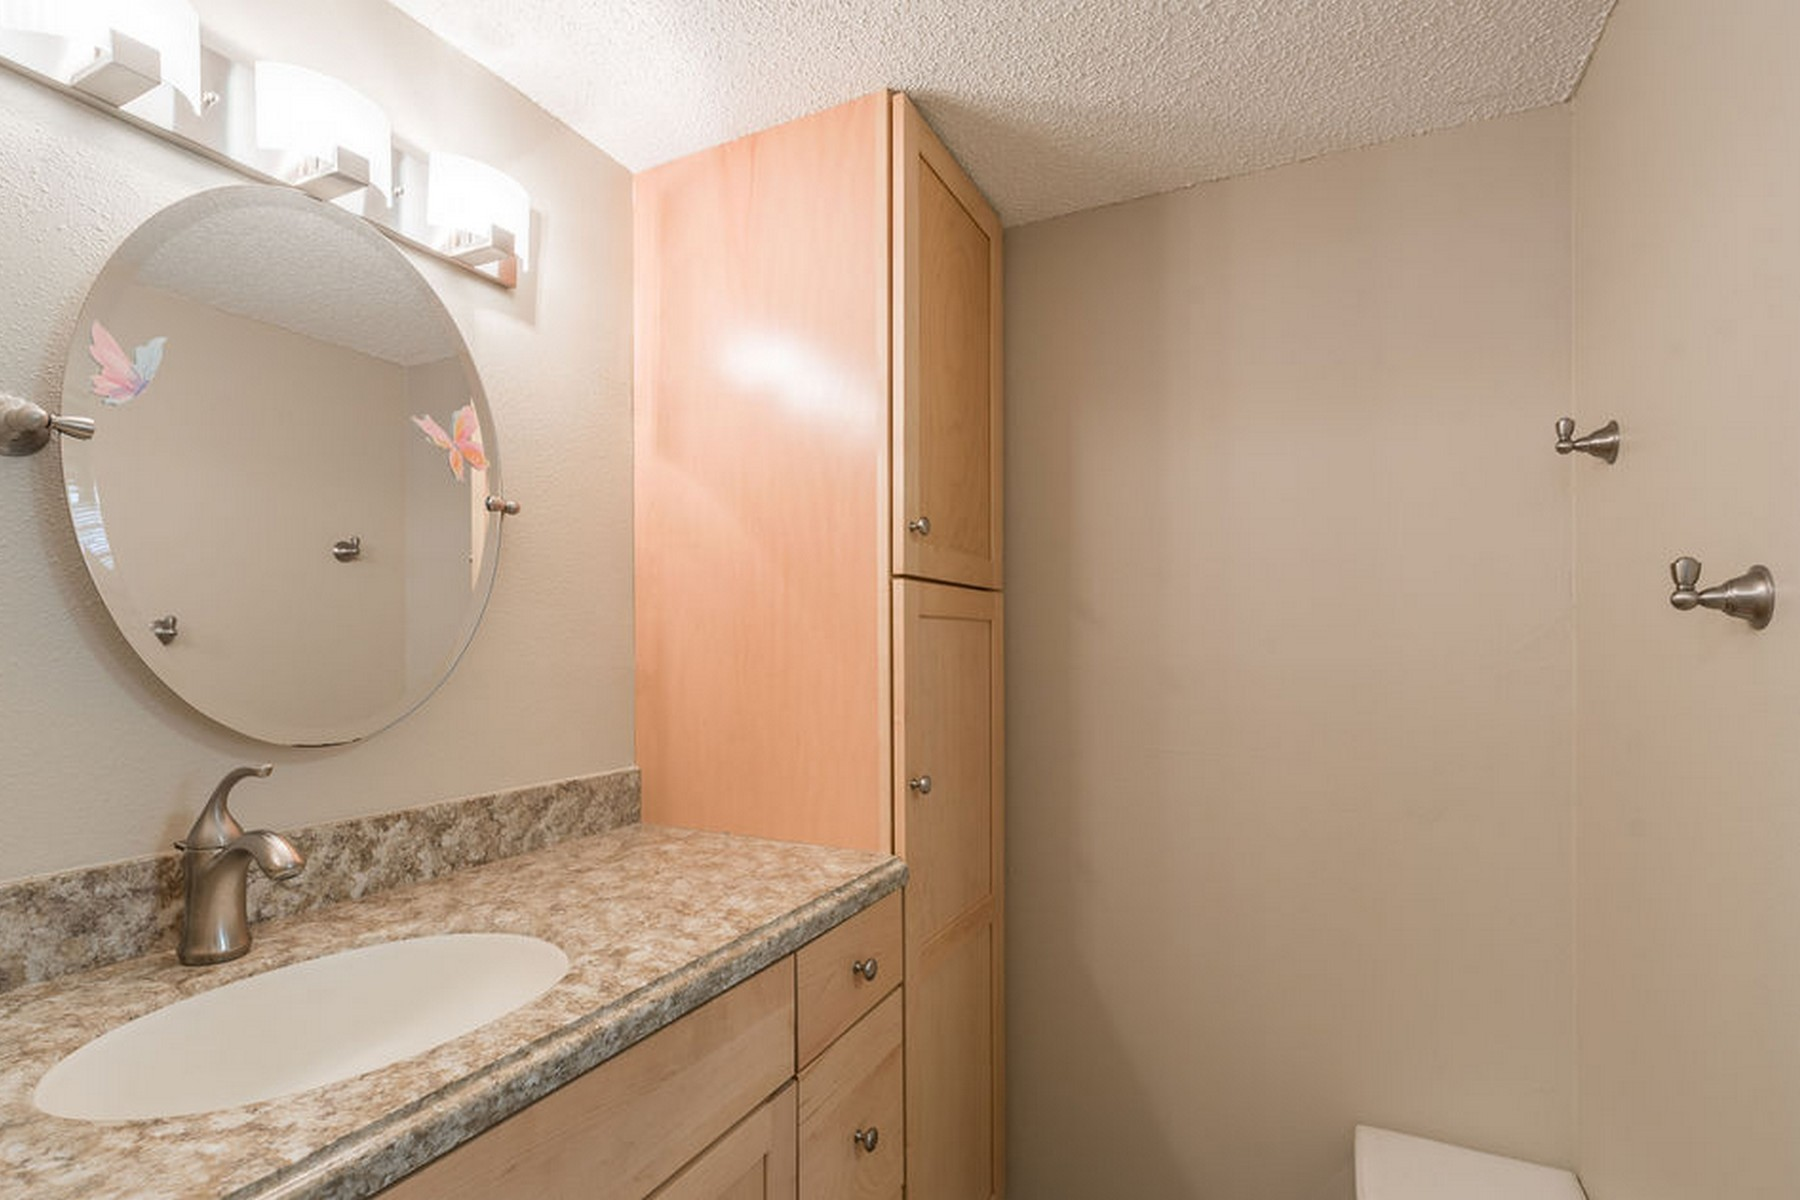 Additional photo for property listing at Updated and Beautifully Furnished Condo 2700 N Highway A1A 3-201 Indialantic, Florida 32903 United States